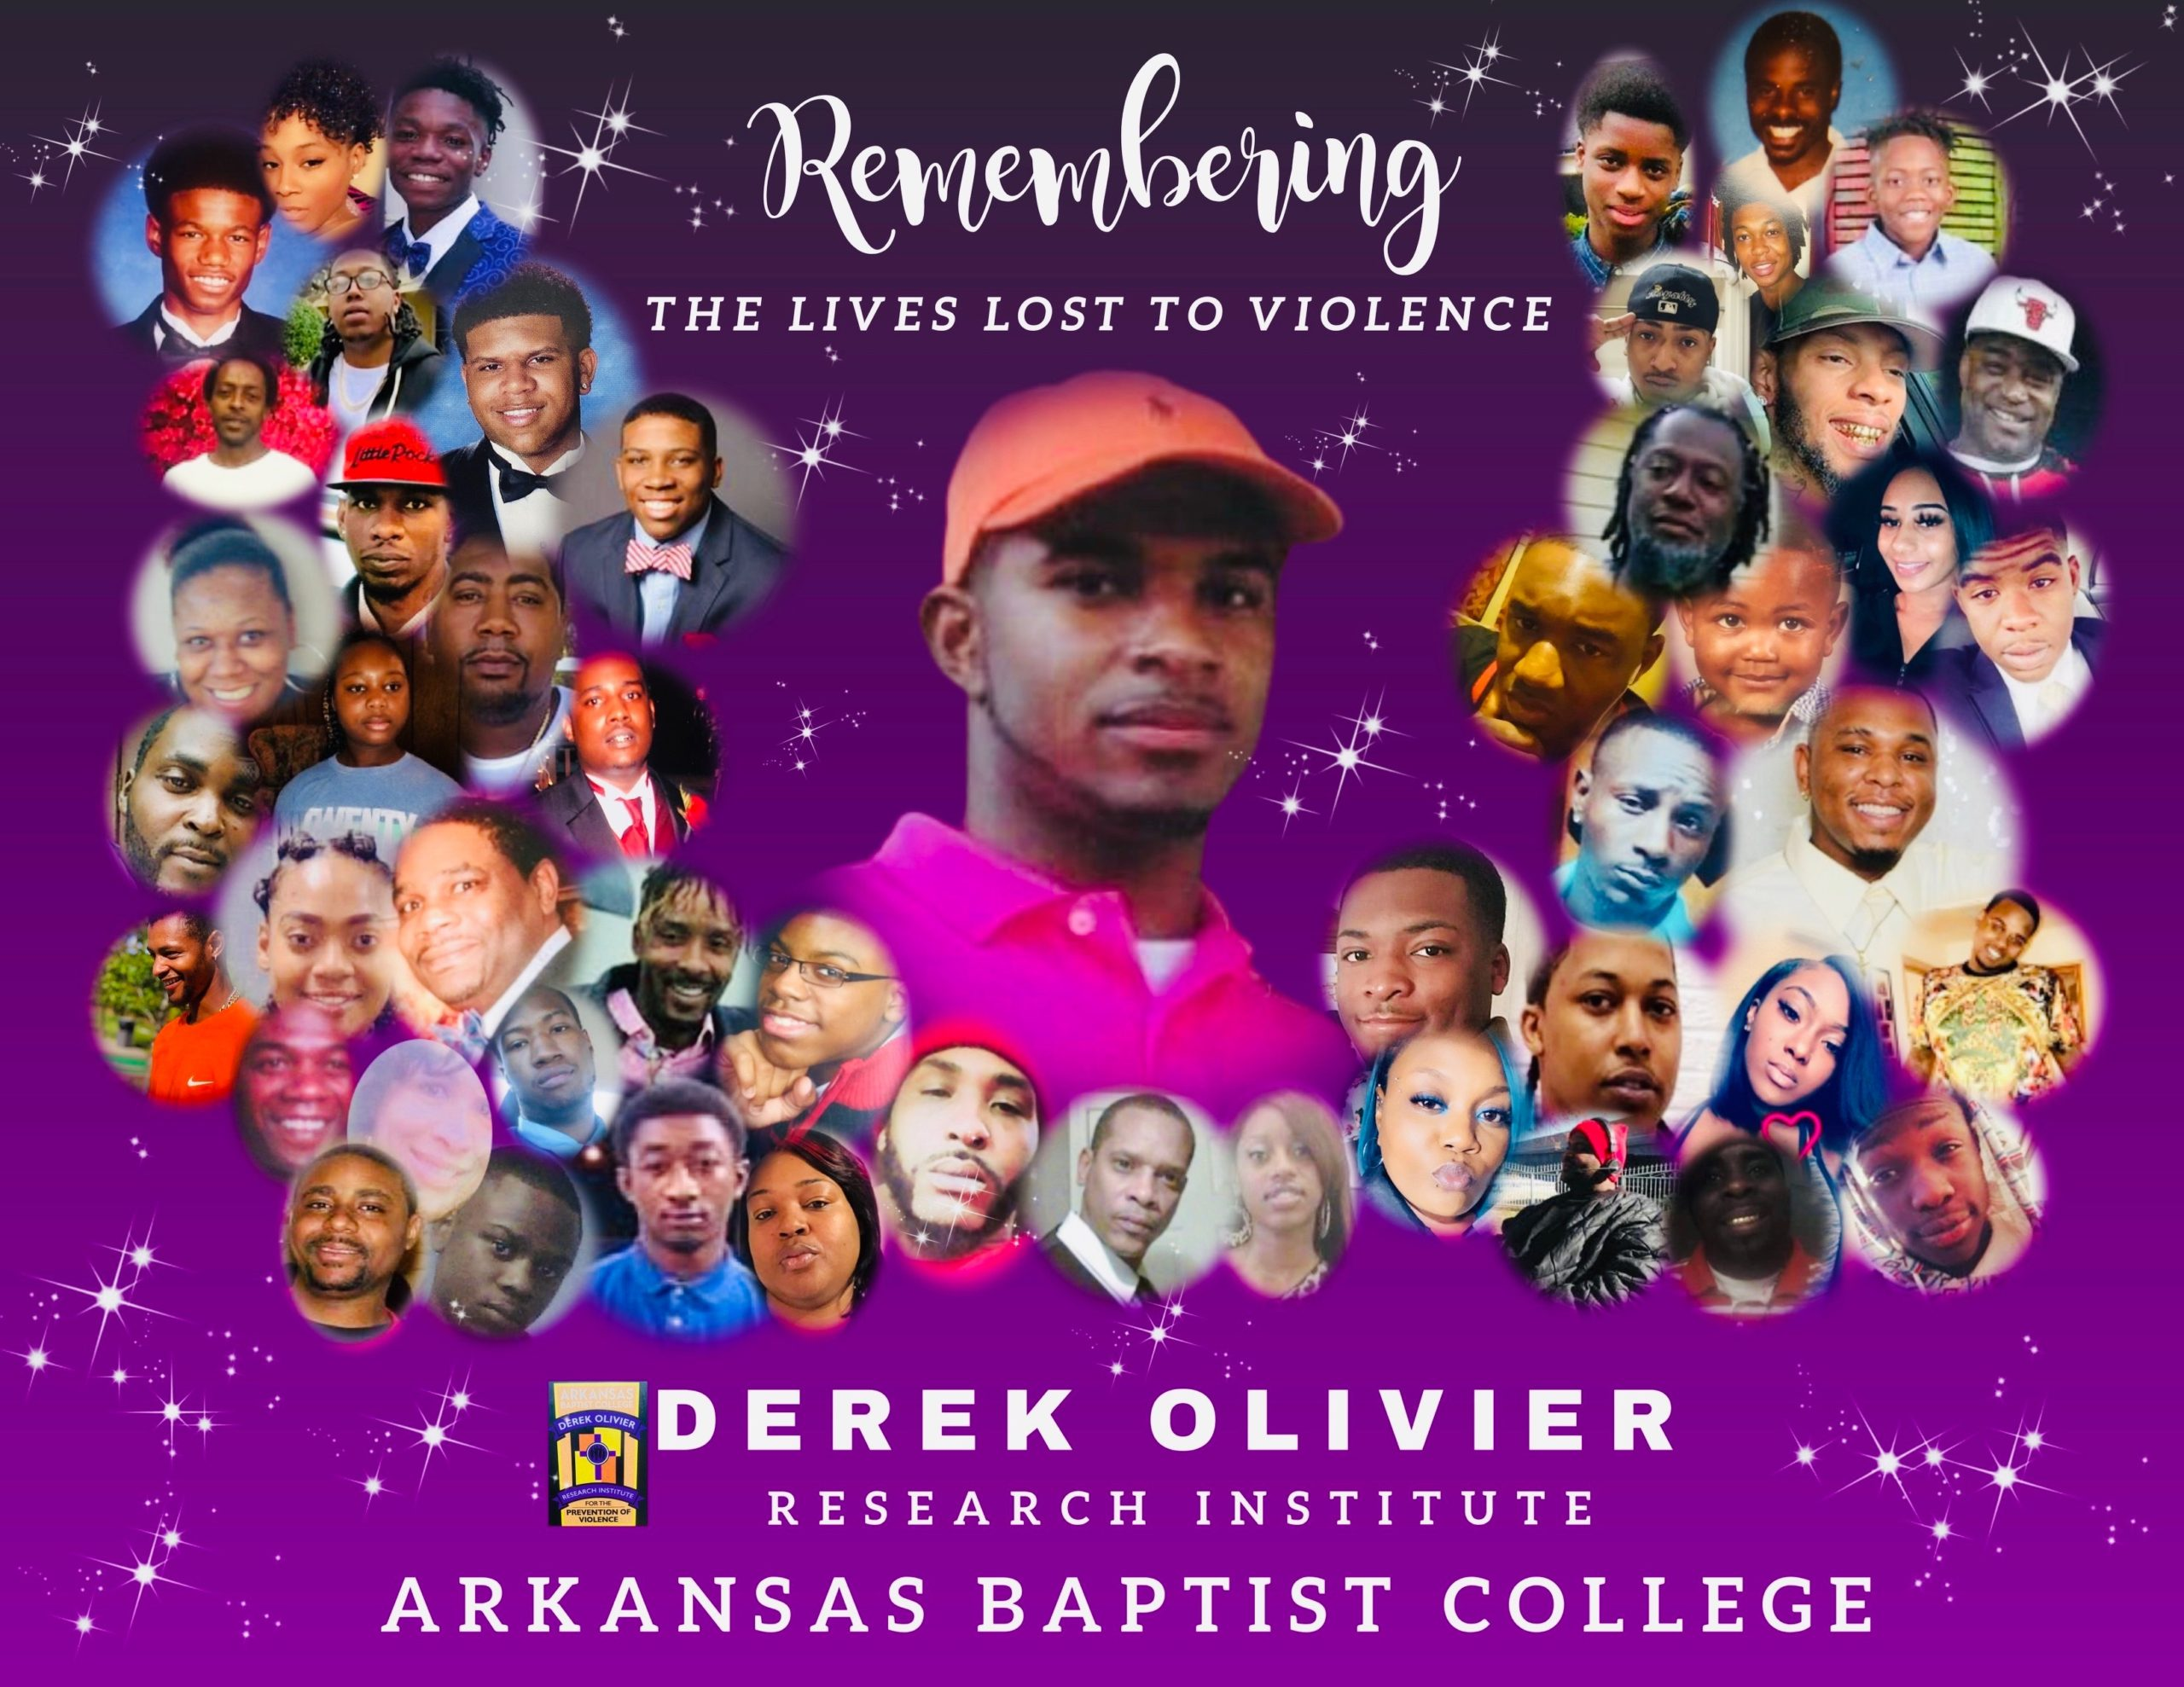 Derek Olivier's Research Institute (DORI) at Arkansas Baptist College Remembers Lives Lost to Violence